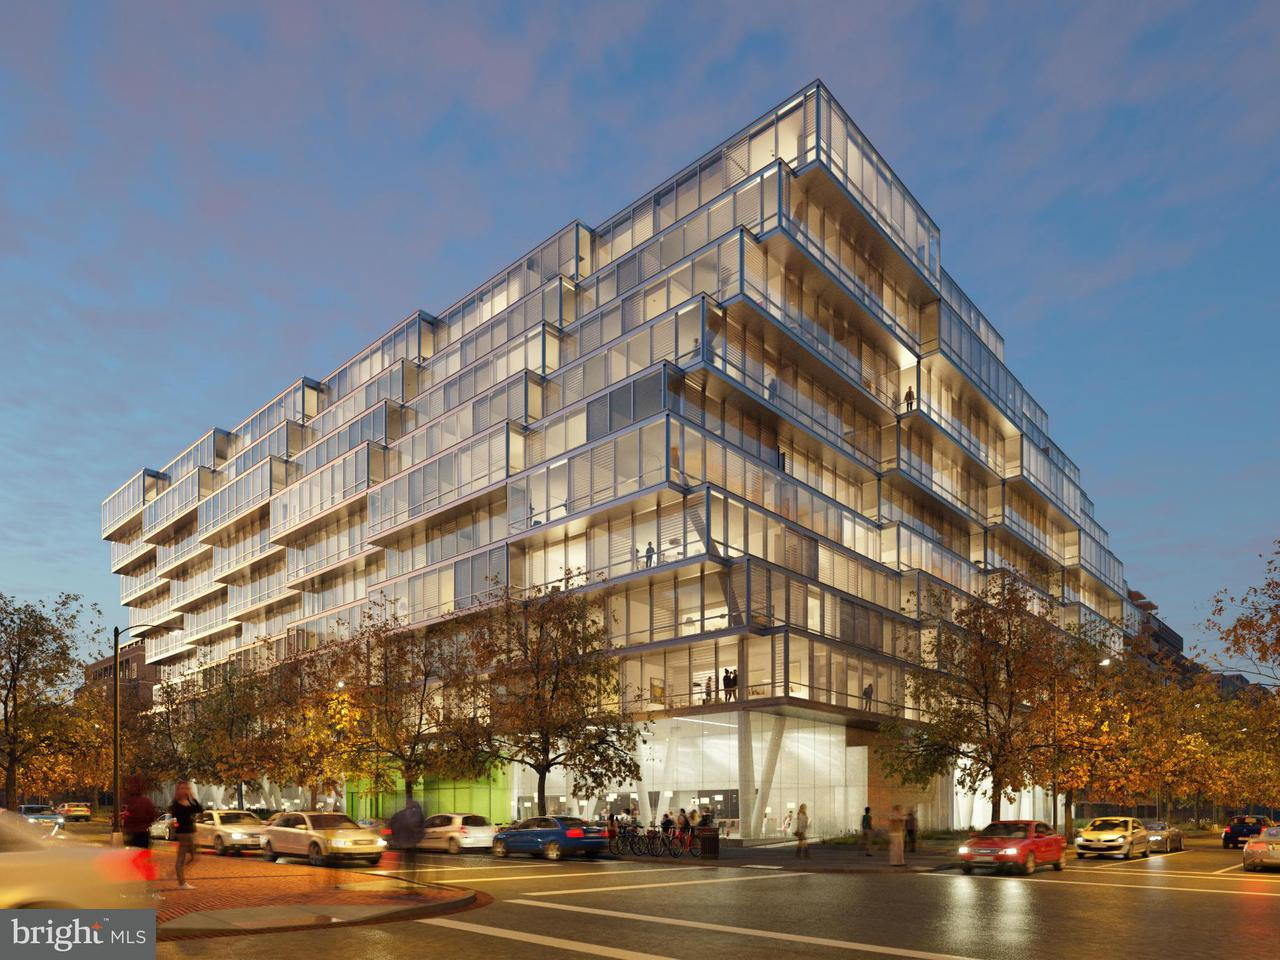 Condominium for Sale at 1111 24th St Nw #73 1111 24th St Nw #73 Washington, District Of Columbia 20037 United States